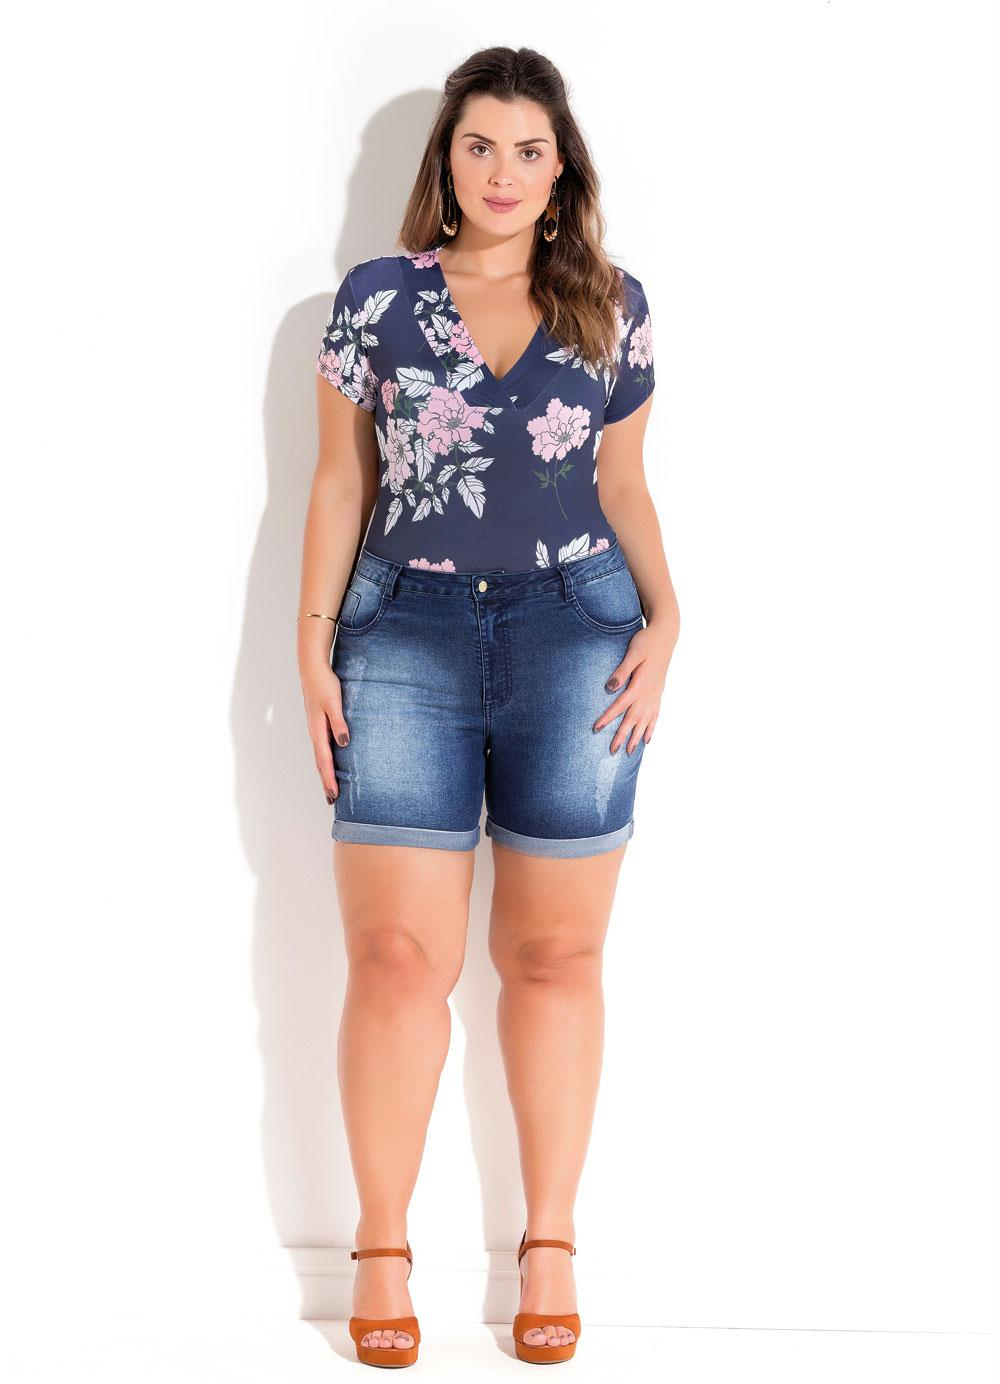 ddb2514327 BODY MANGA CURTA FLORAL AZUL PLUS SIZE QUINTESS - Quintess